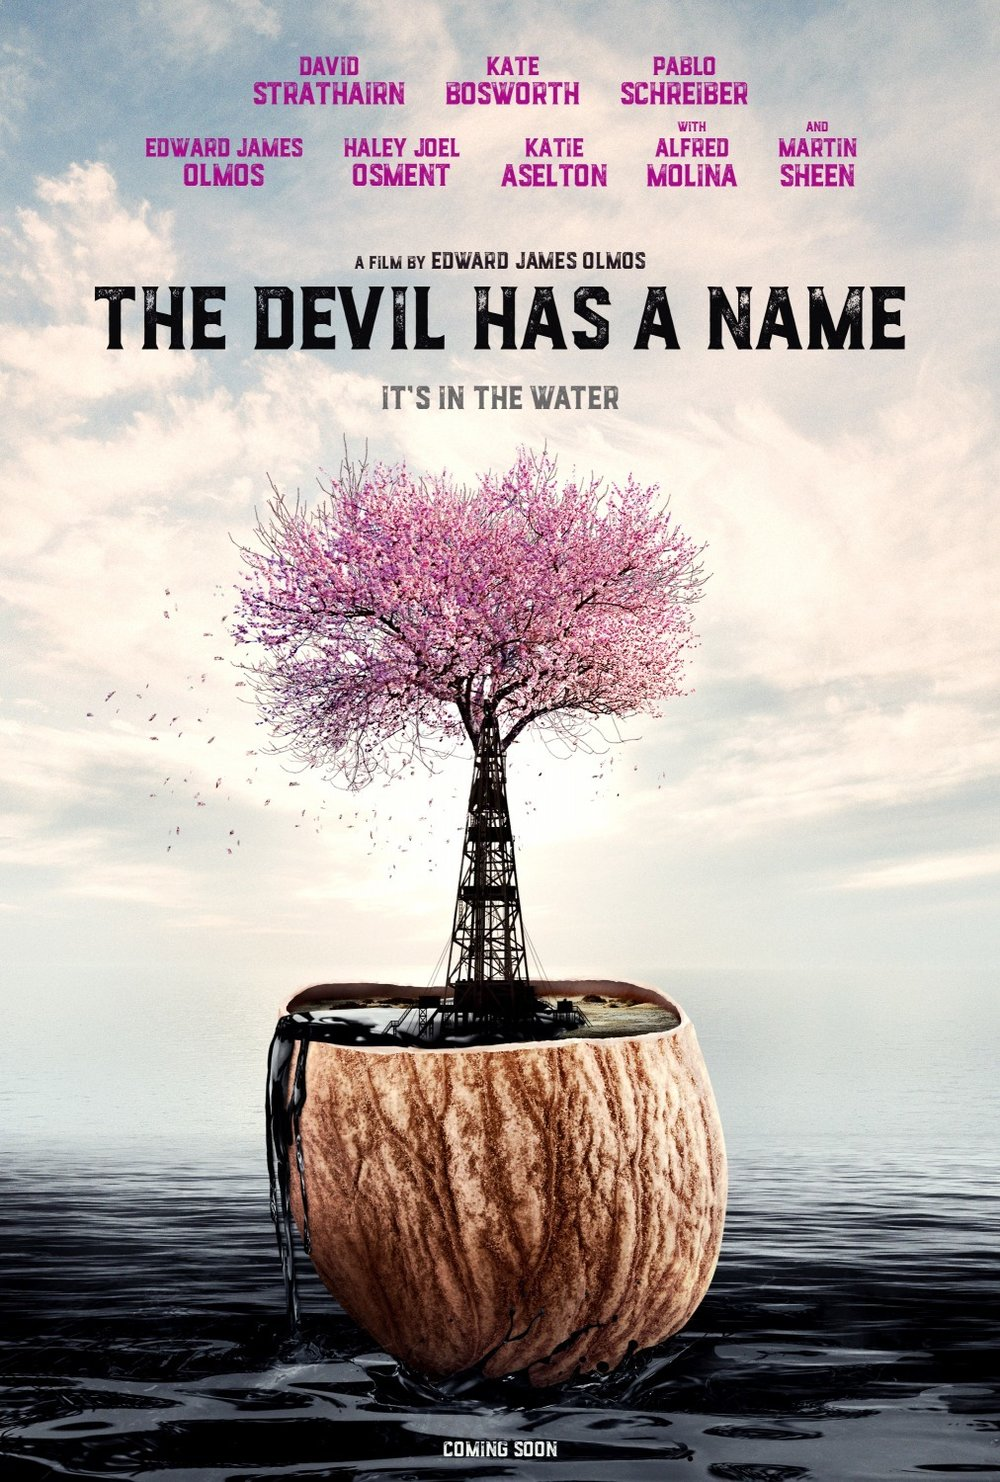 THE DEVIL HAS A NAME (2019)   Dir. Edward James Olmos  Starring: David Strathairn, Kate Bosworth, Pablo Shreiber, Edward James Olmos, Haley Joel Osment, with Alfred Molina and Martin Sheen  Coming soon!